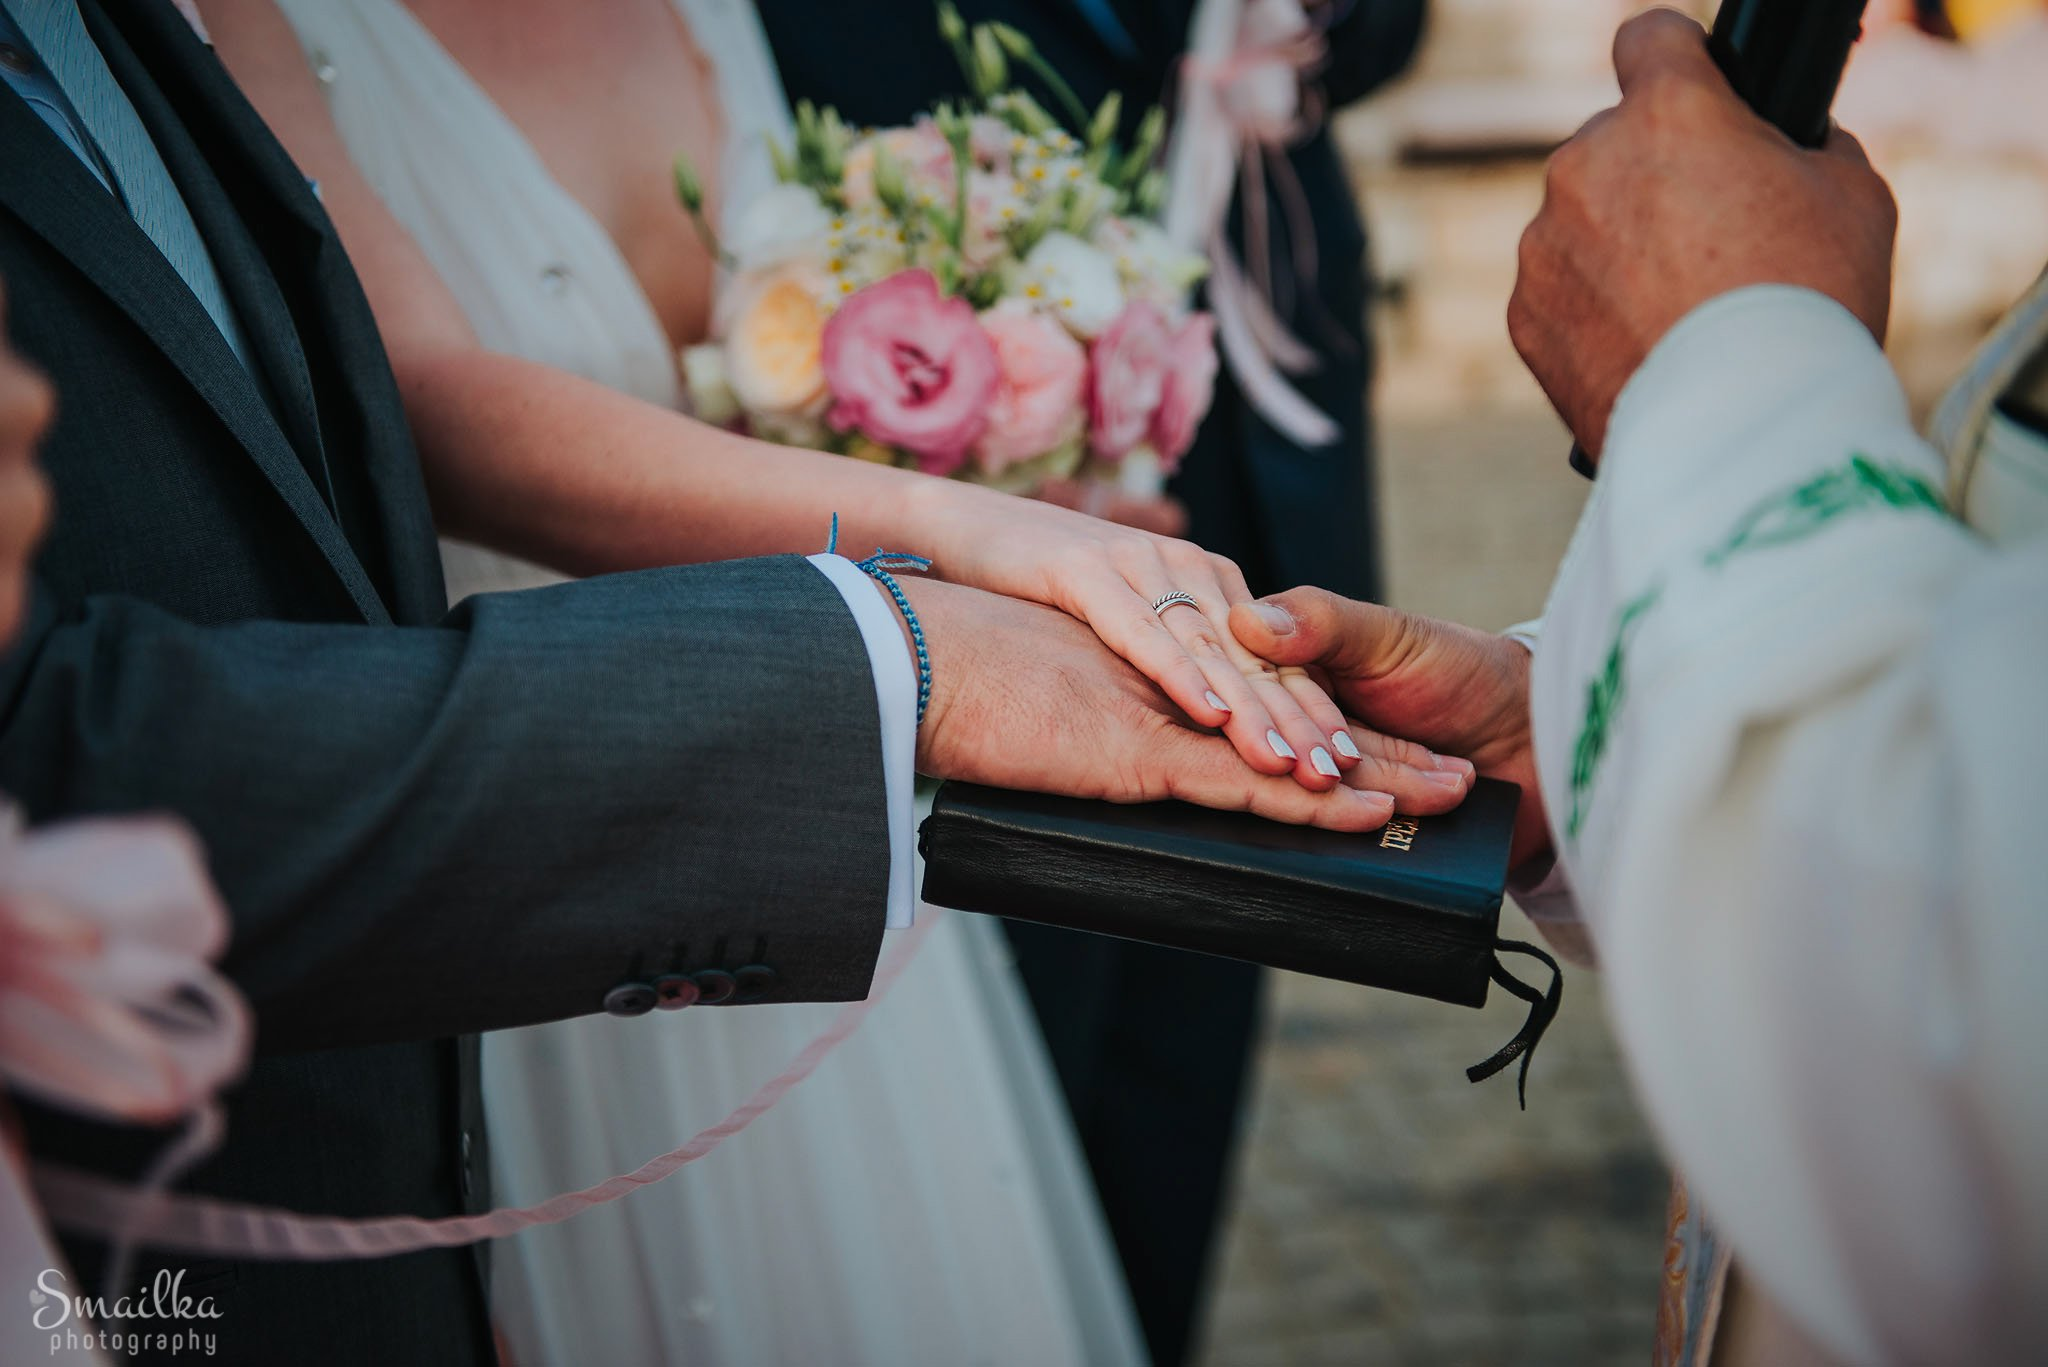 Wedding couple taking a vow hand in hand over the Bible